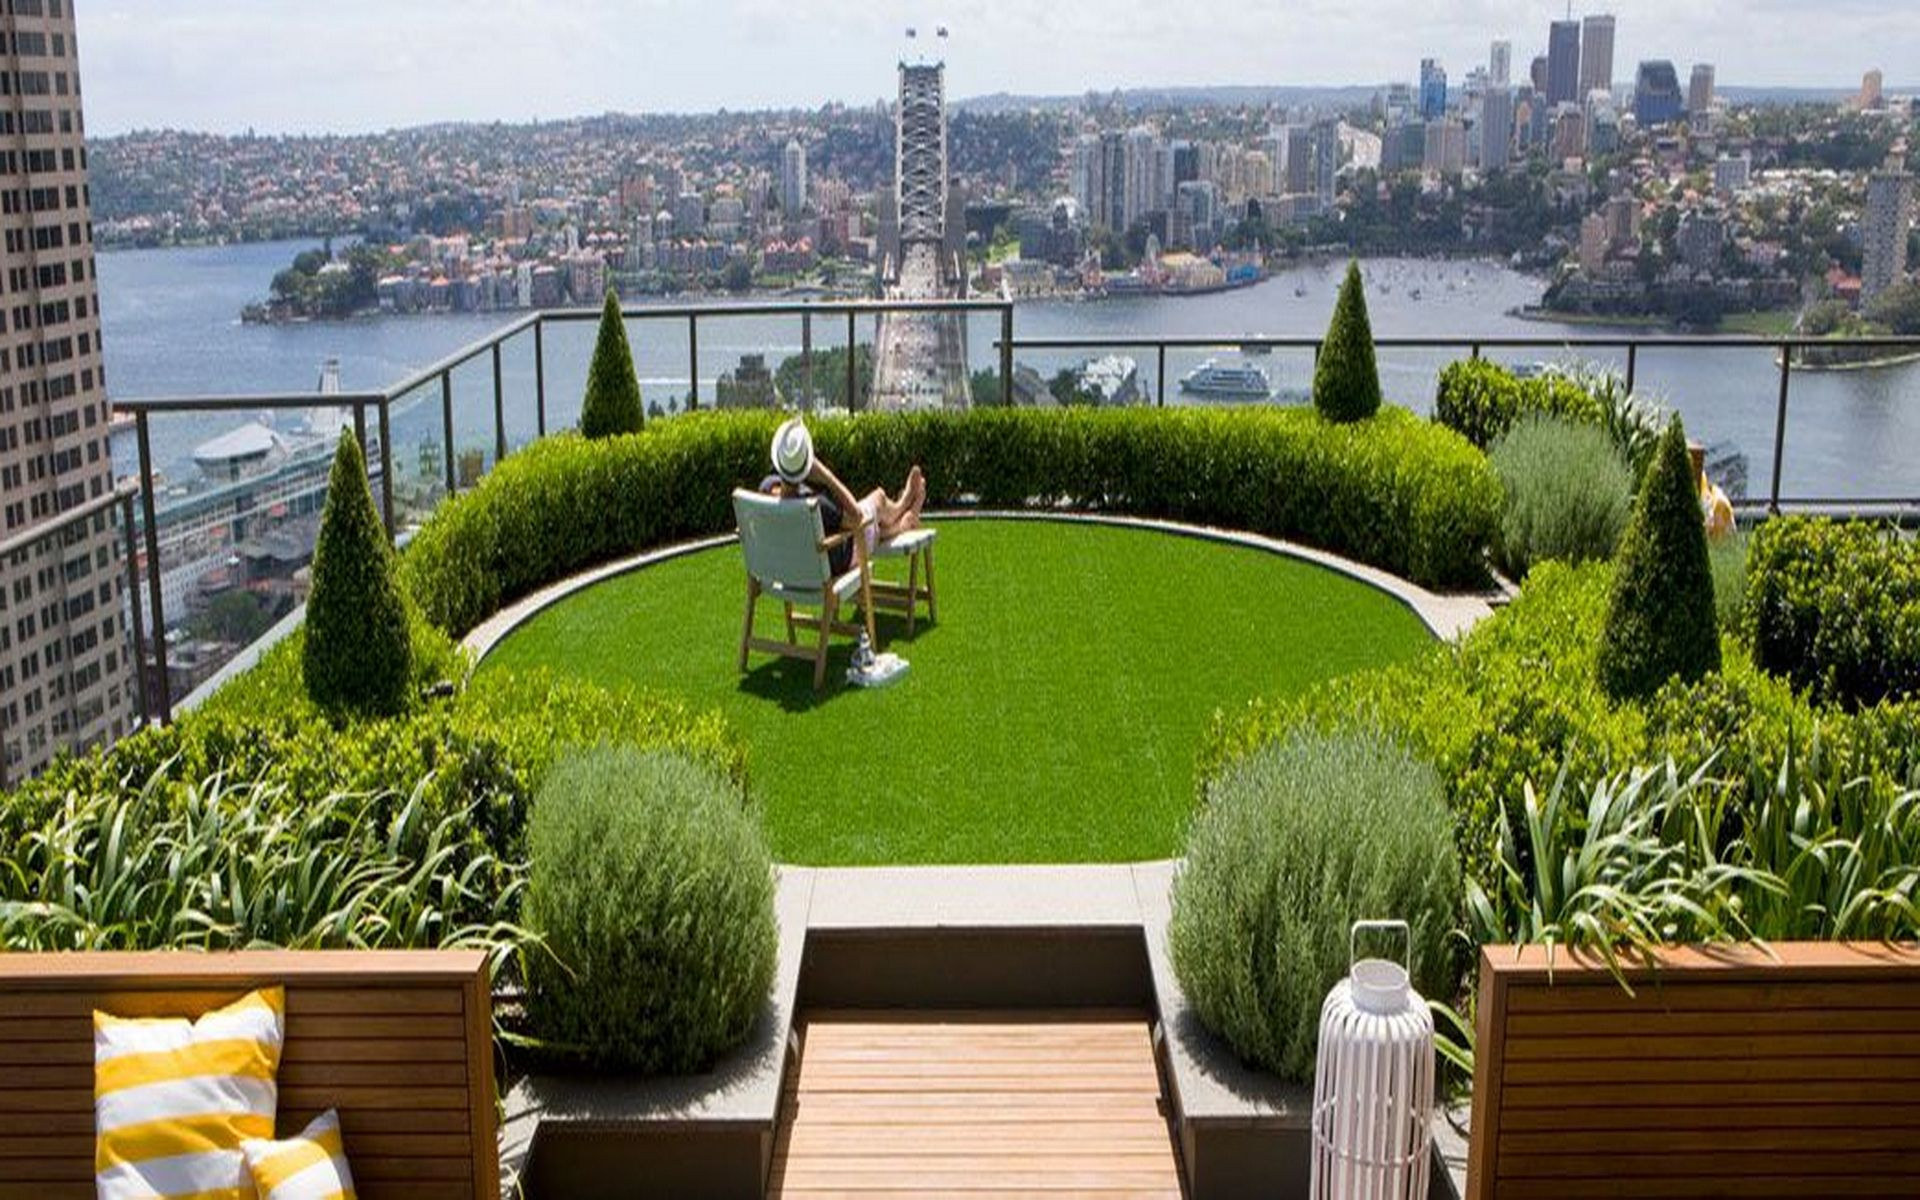 Slope garden ideas city landscape top view from rooftop for Top garden designers